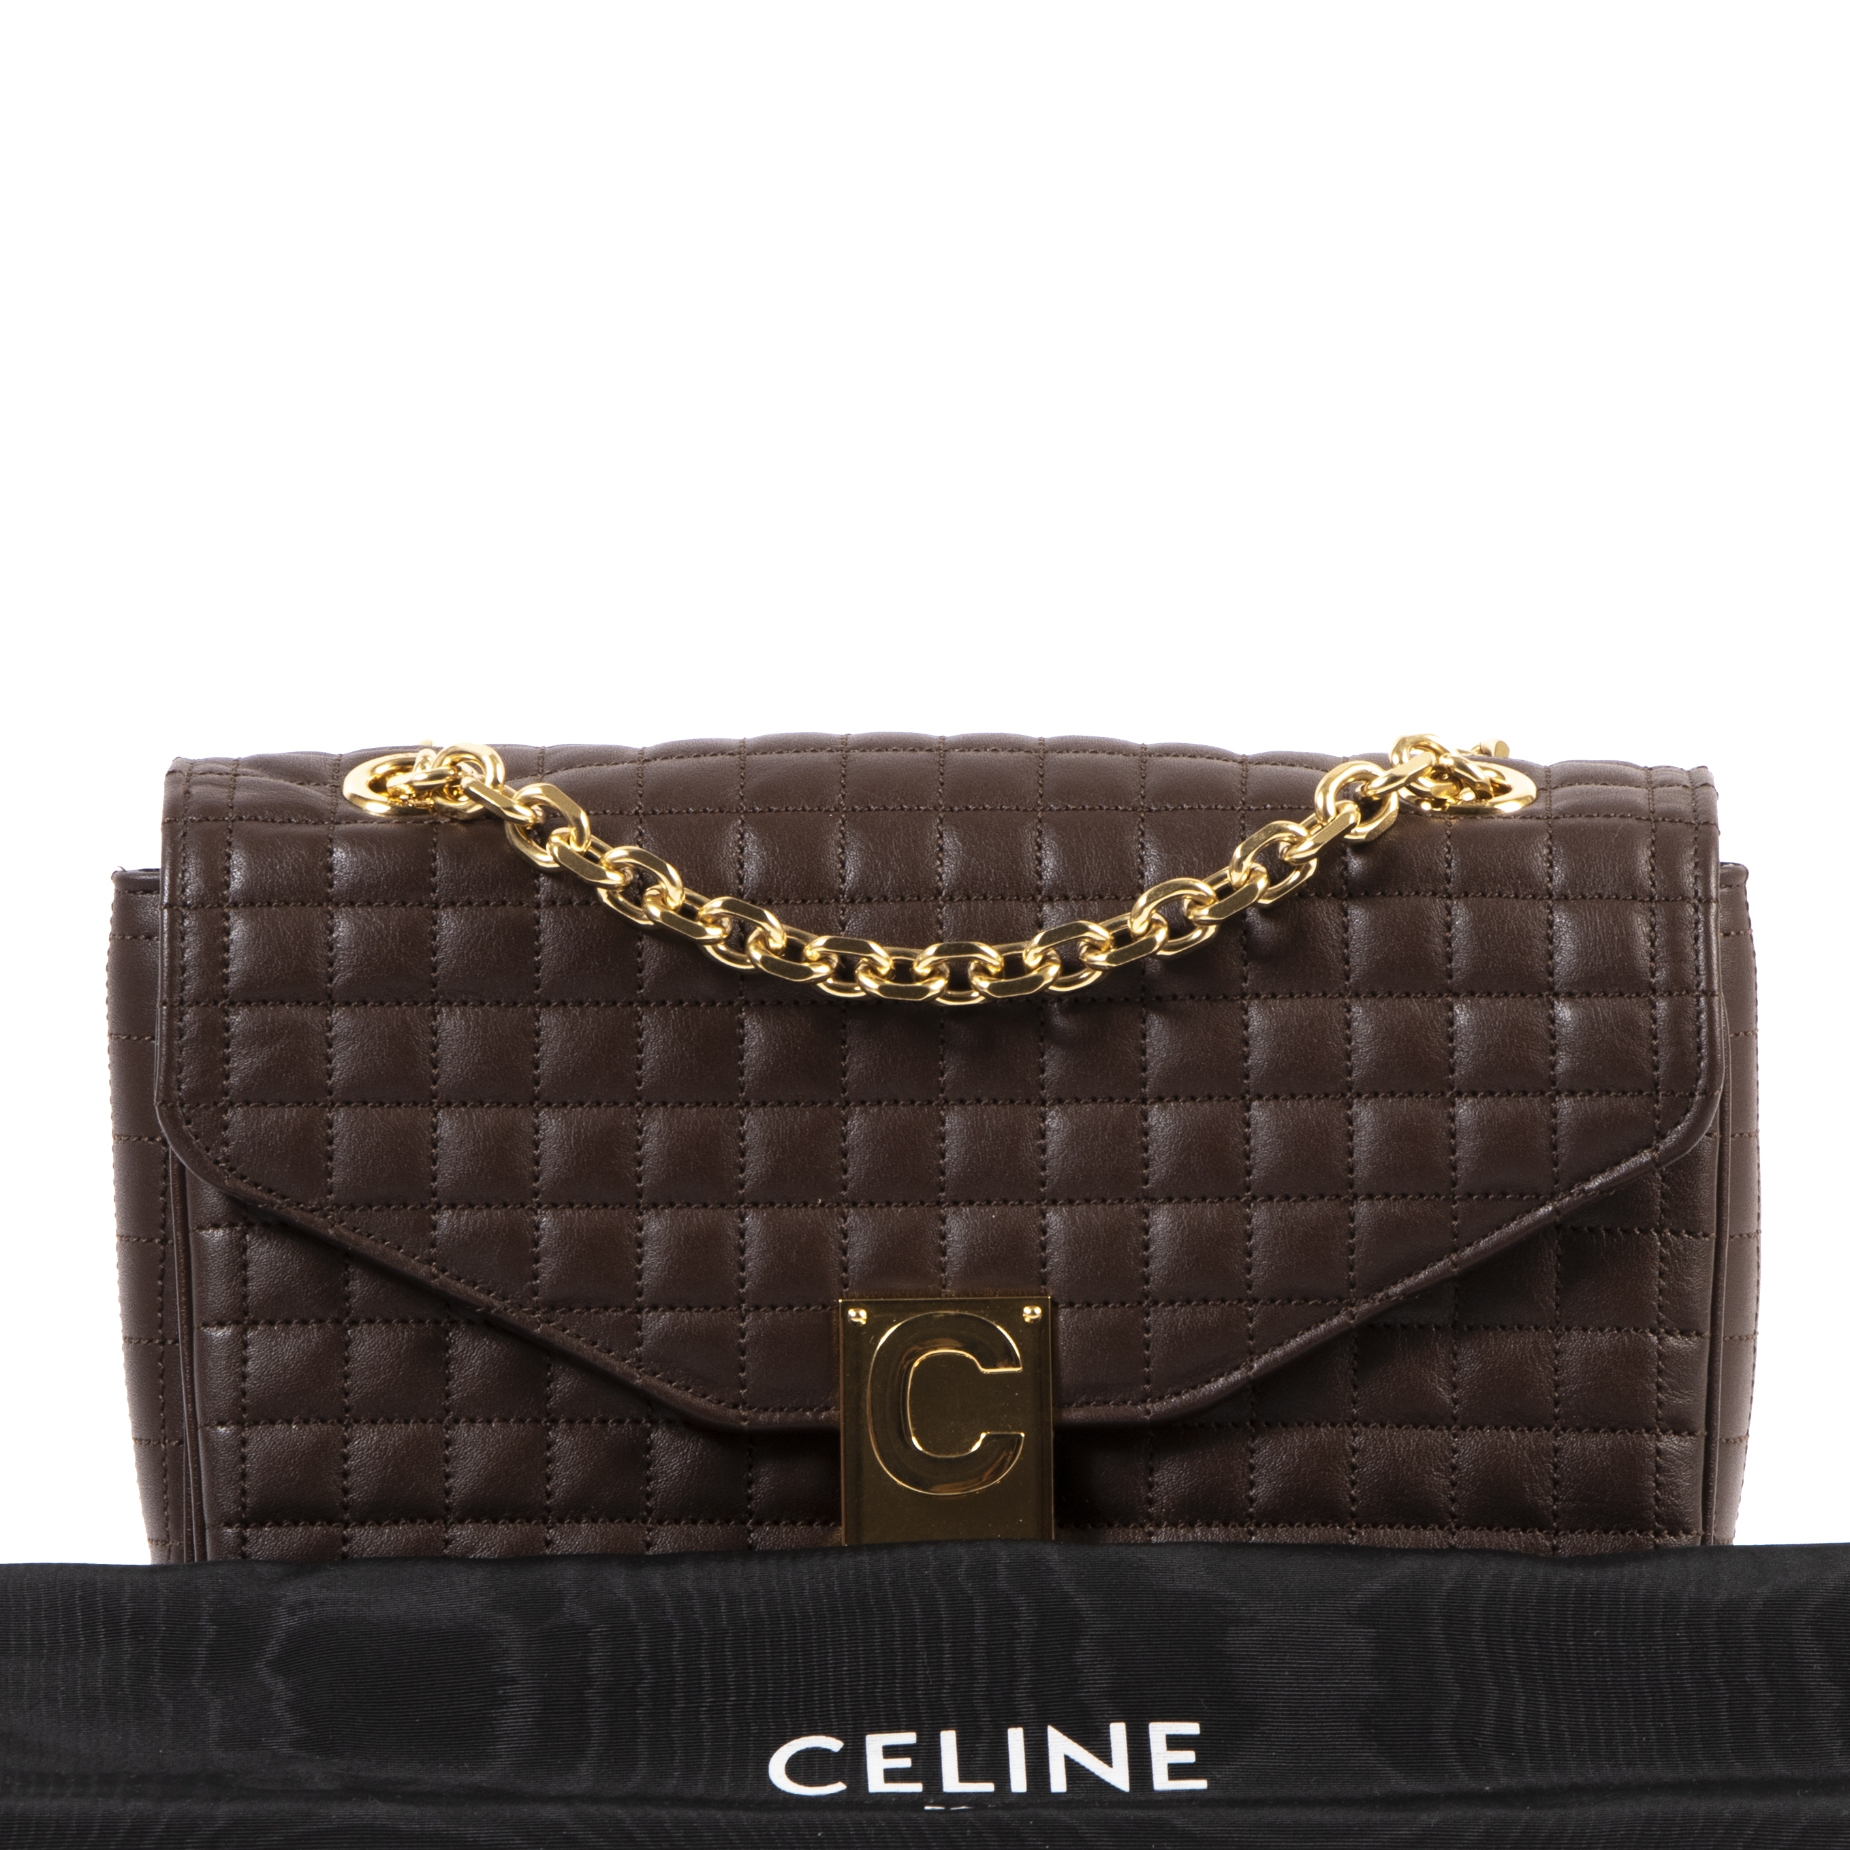 Celine C-Bag Brown Medium Matelasse Bag